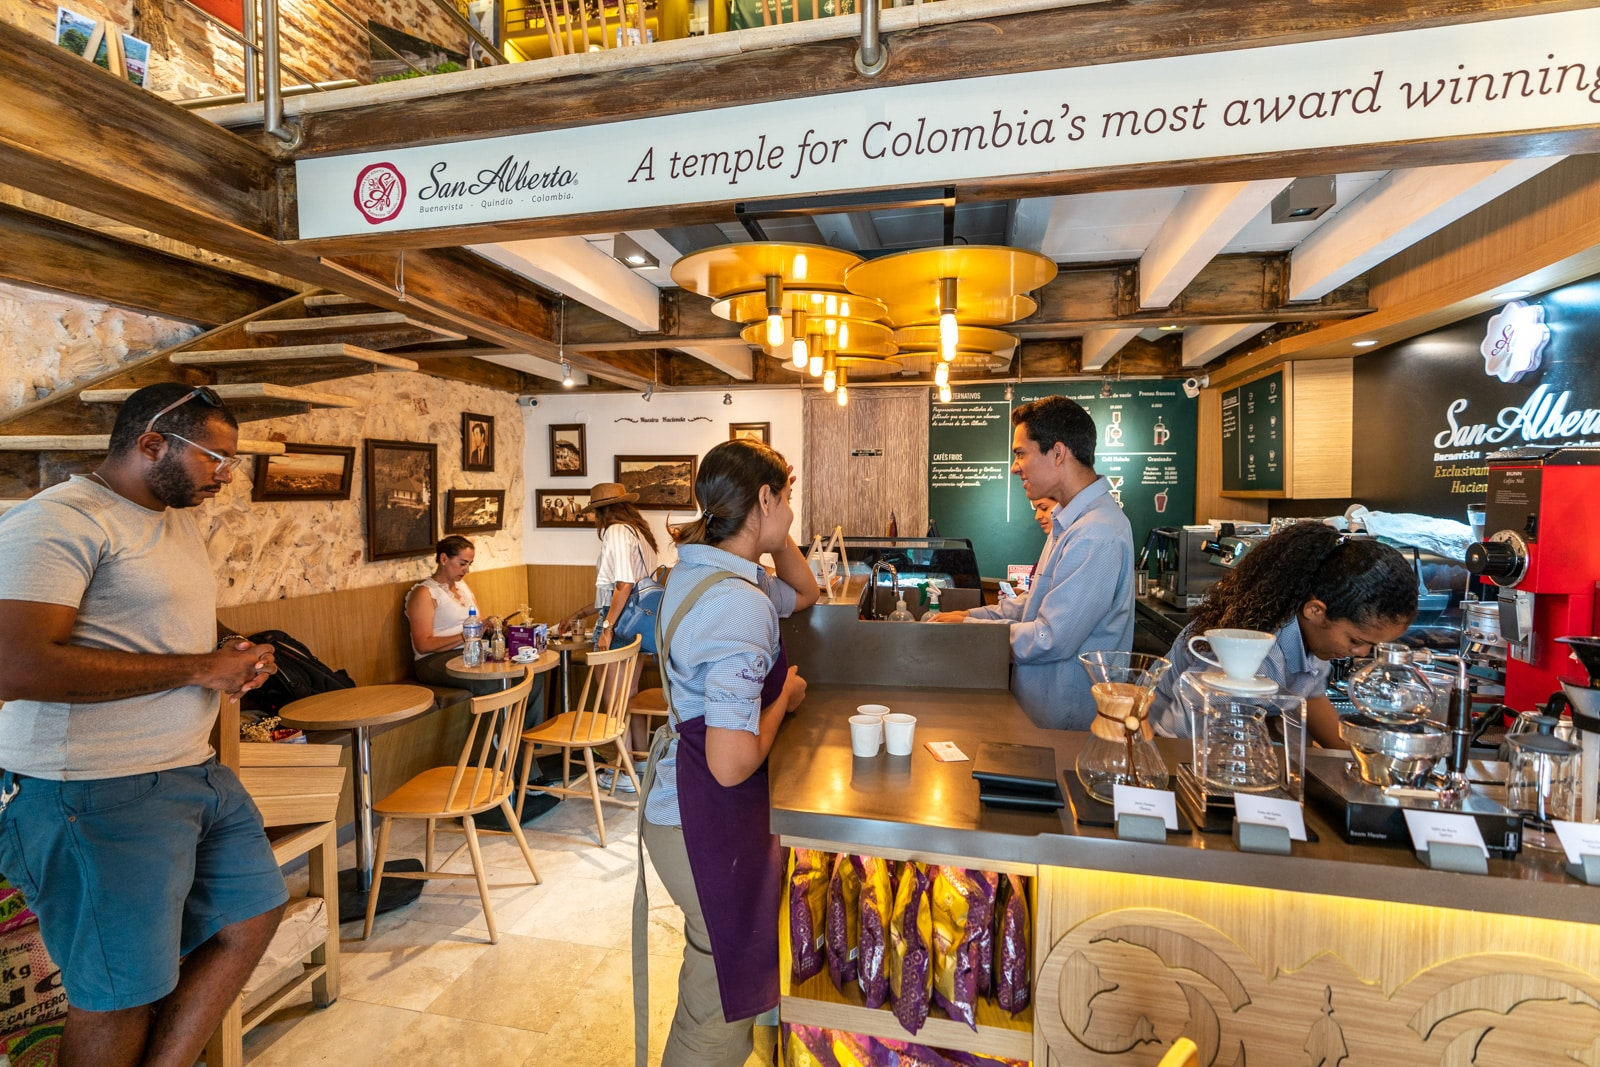 Cafes with wifi for digital nomads in Cartagena, Colombia - Cafe San Alberto - Lost With Purpose travel blog